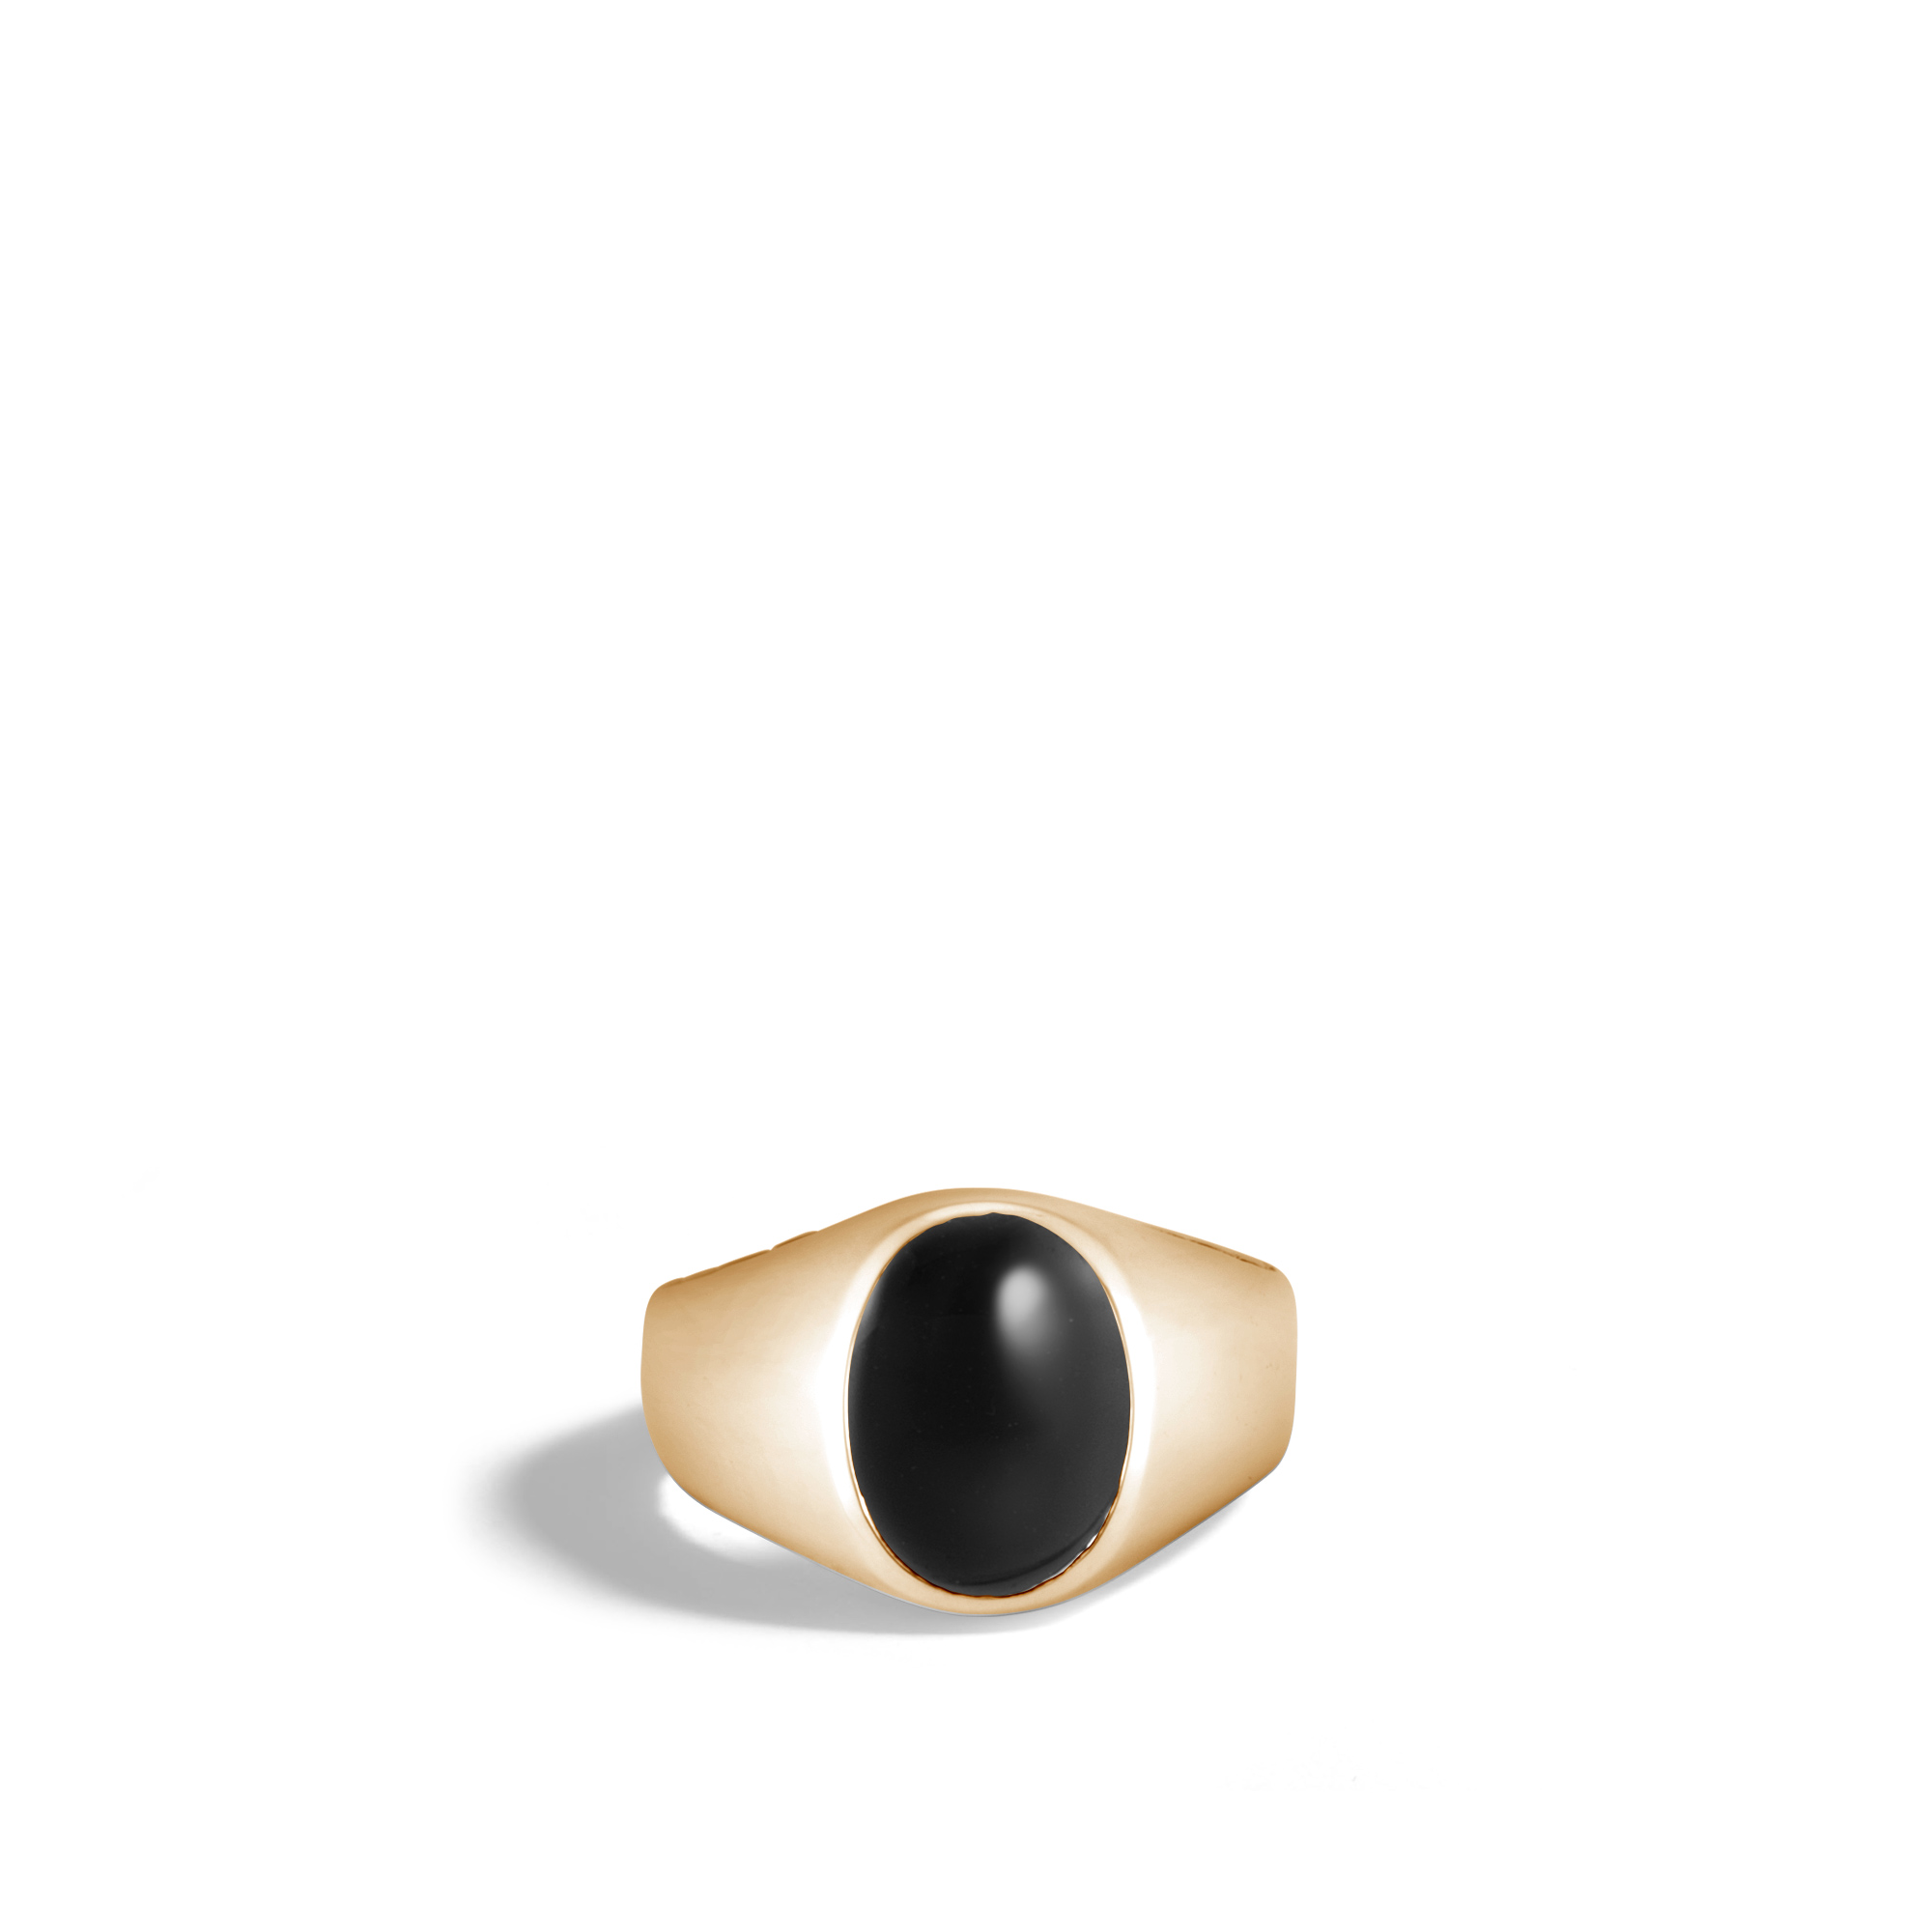 Classic Chain Oval Signet Ring in 18K Gold with Gemstone, Black Onyx, large